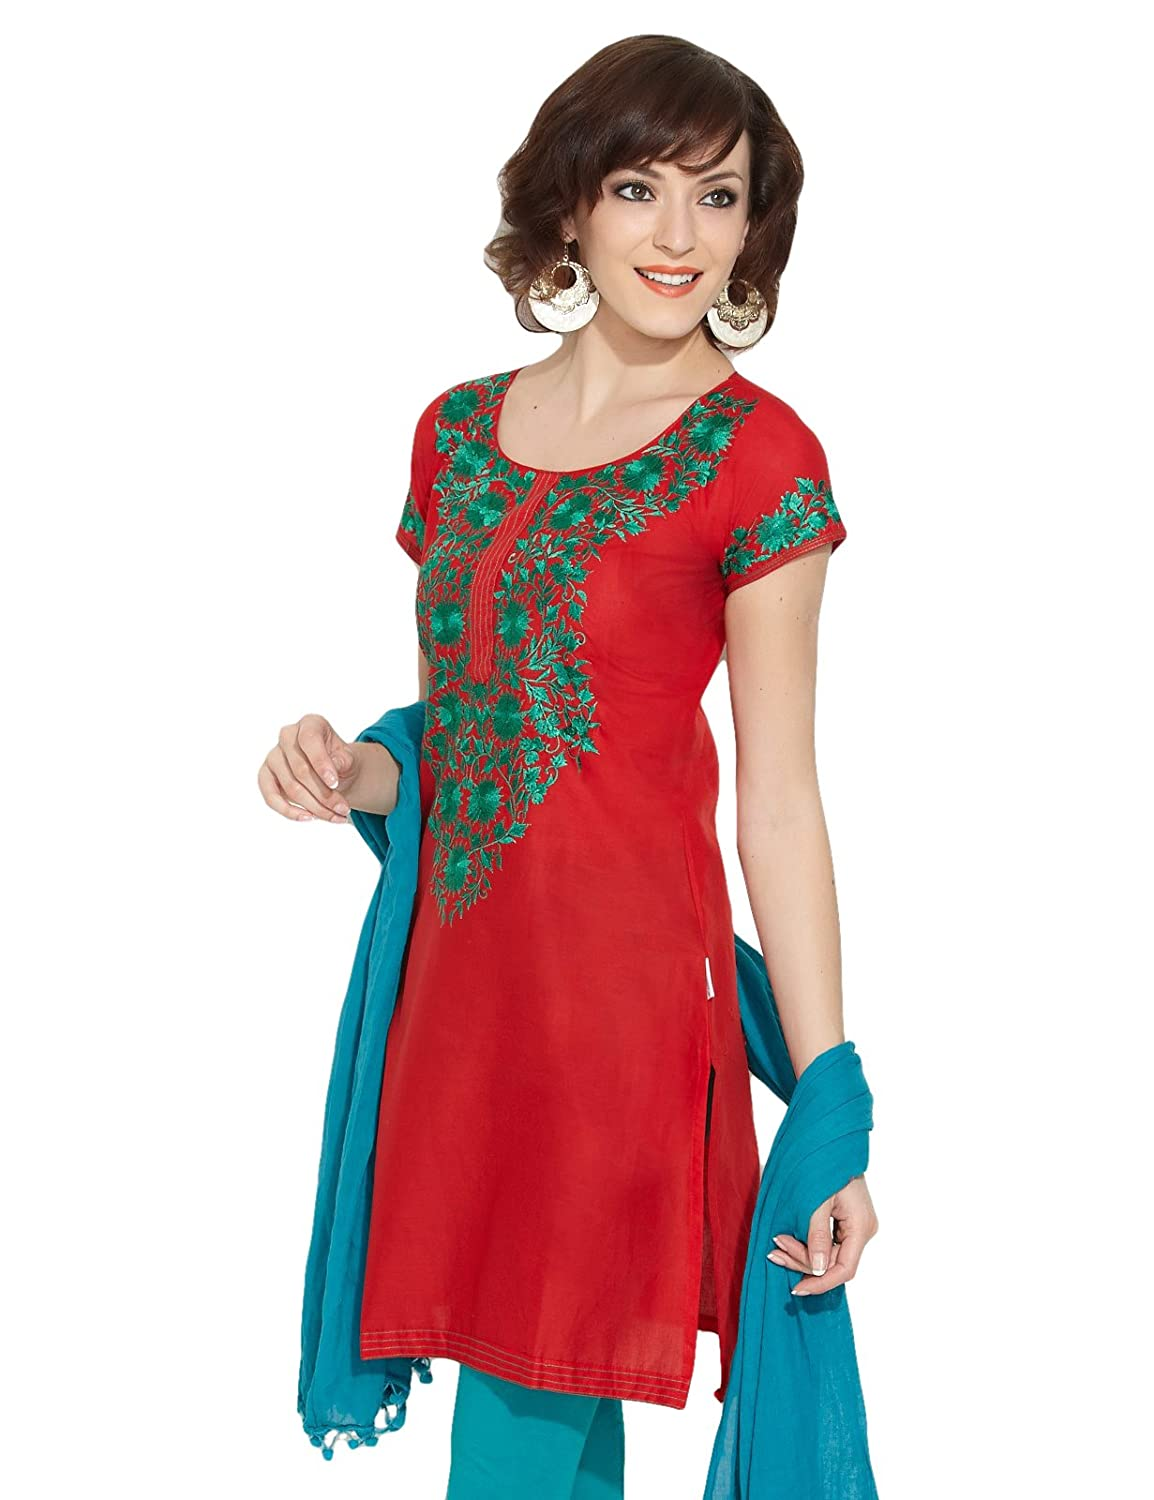 Lovely lady discount amazon india